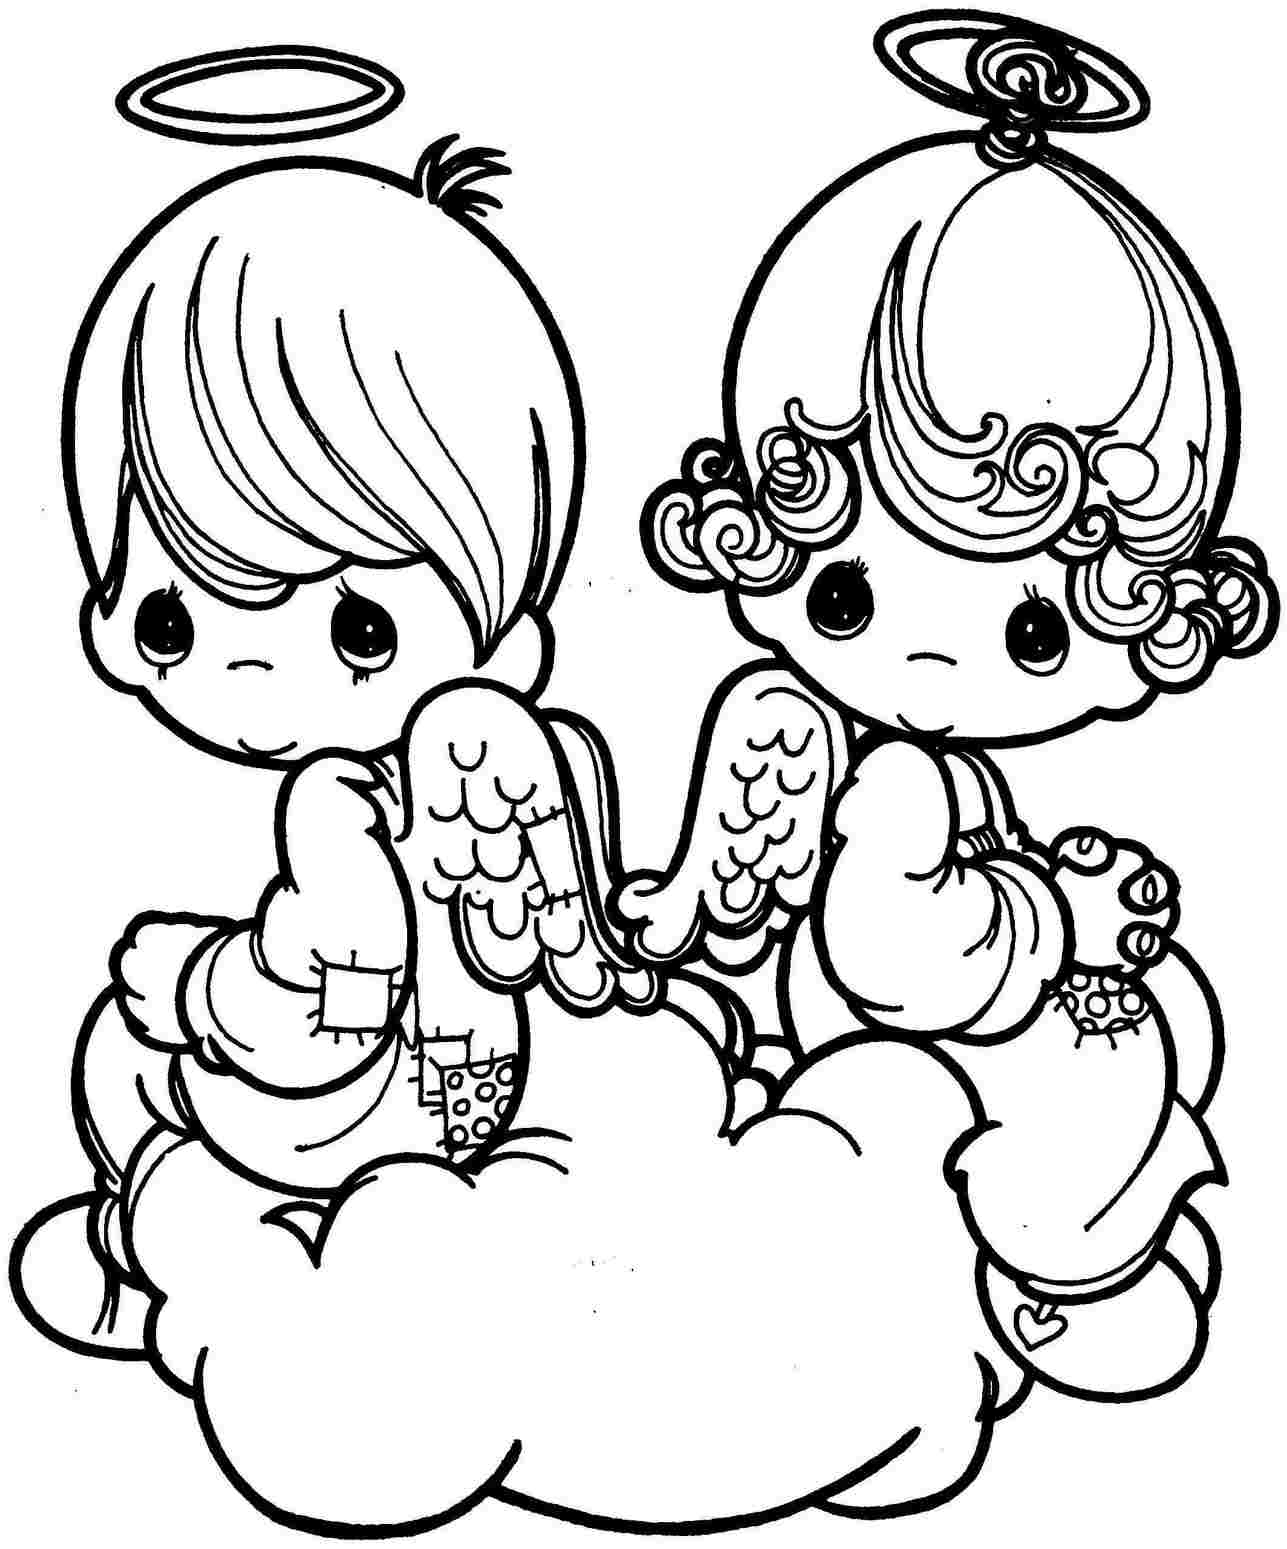 cupid coloring book pages - photo#32